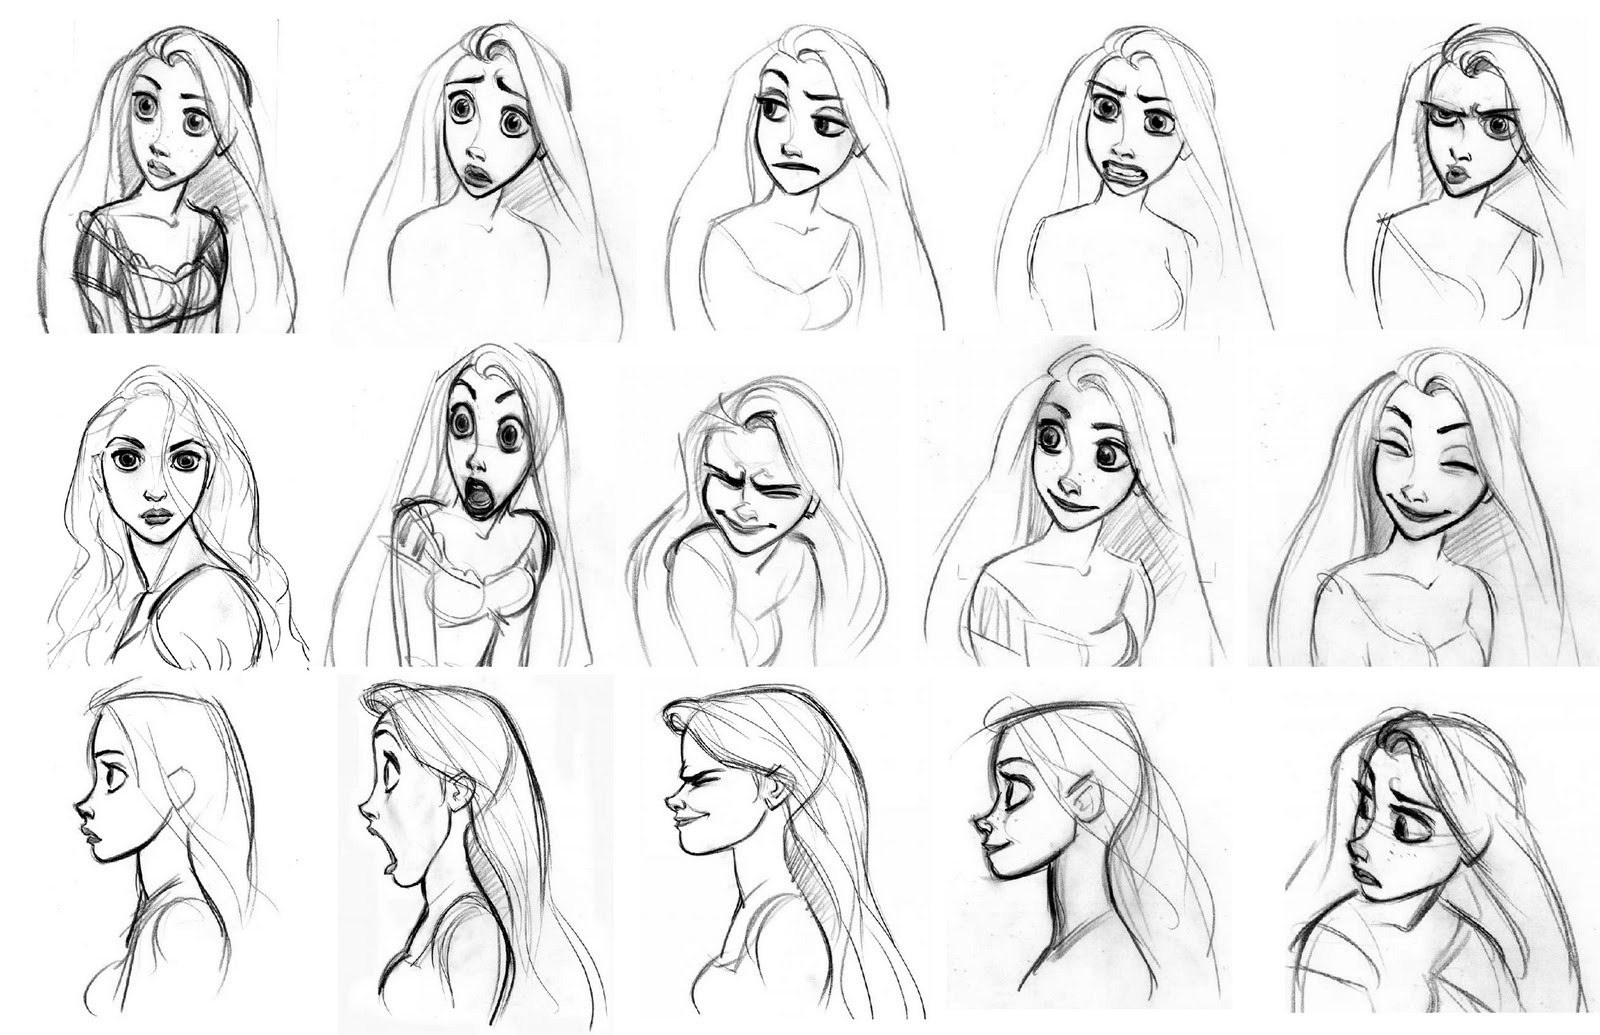 Disney Character Design Study : Cartoon concept design tangled sketches and characters